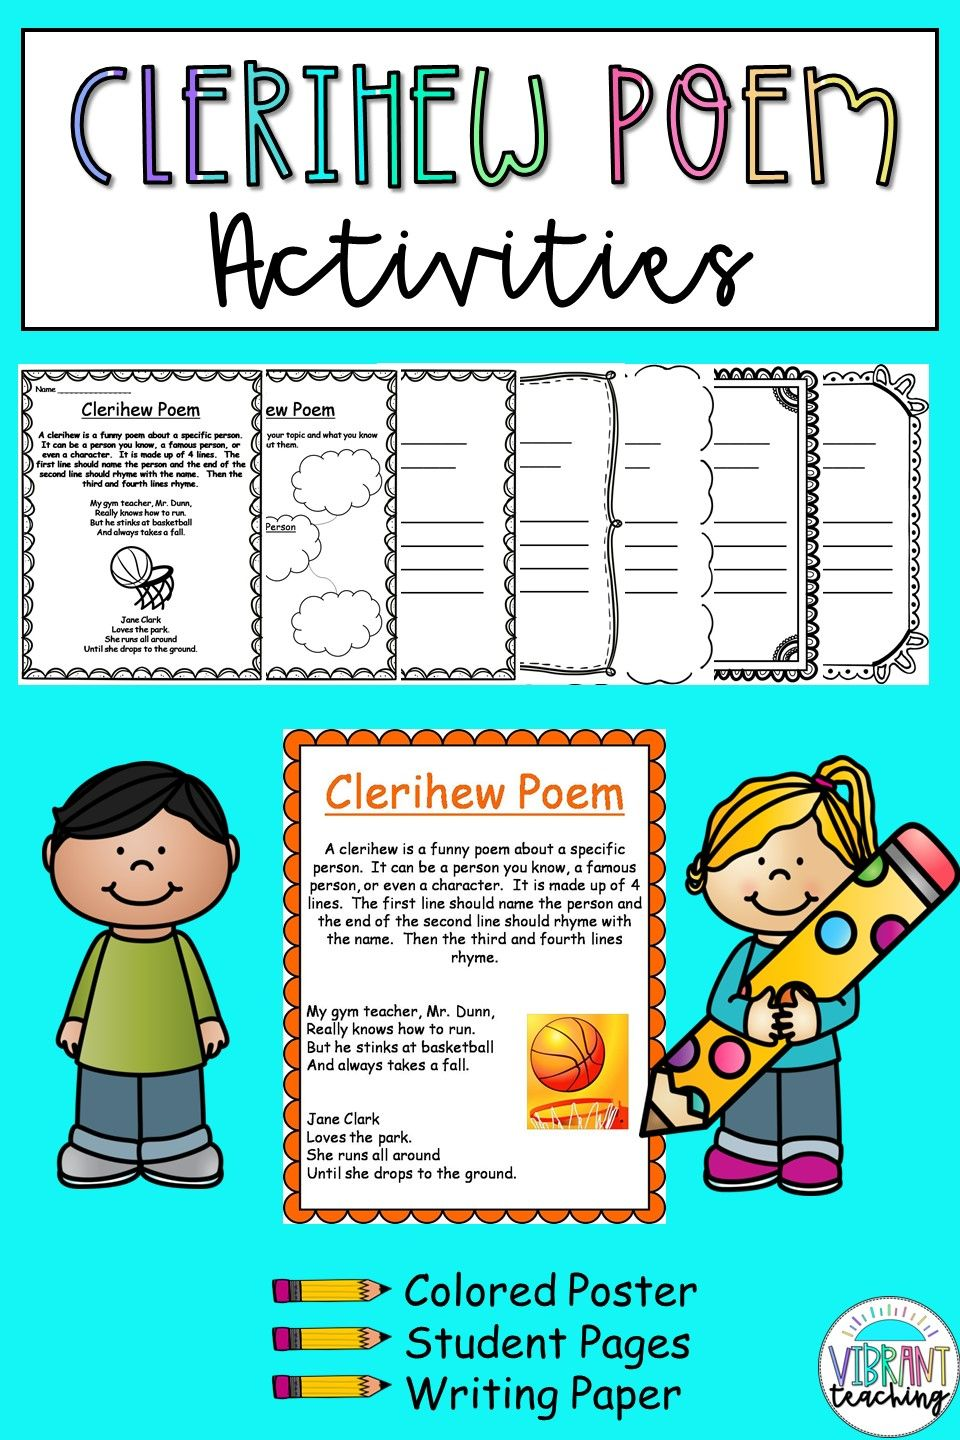 Clerihew Poems For Kids In 2020 Poem Activities Poetry For Kids Writing Activities